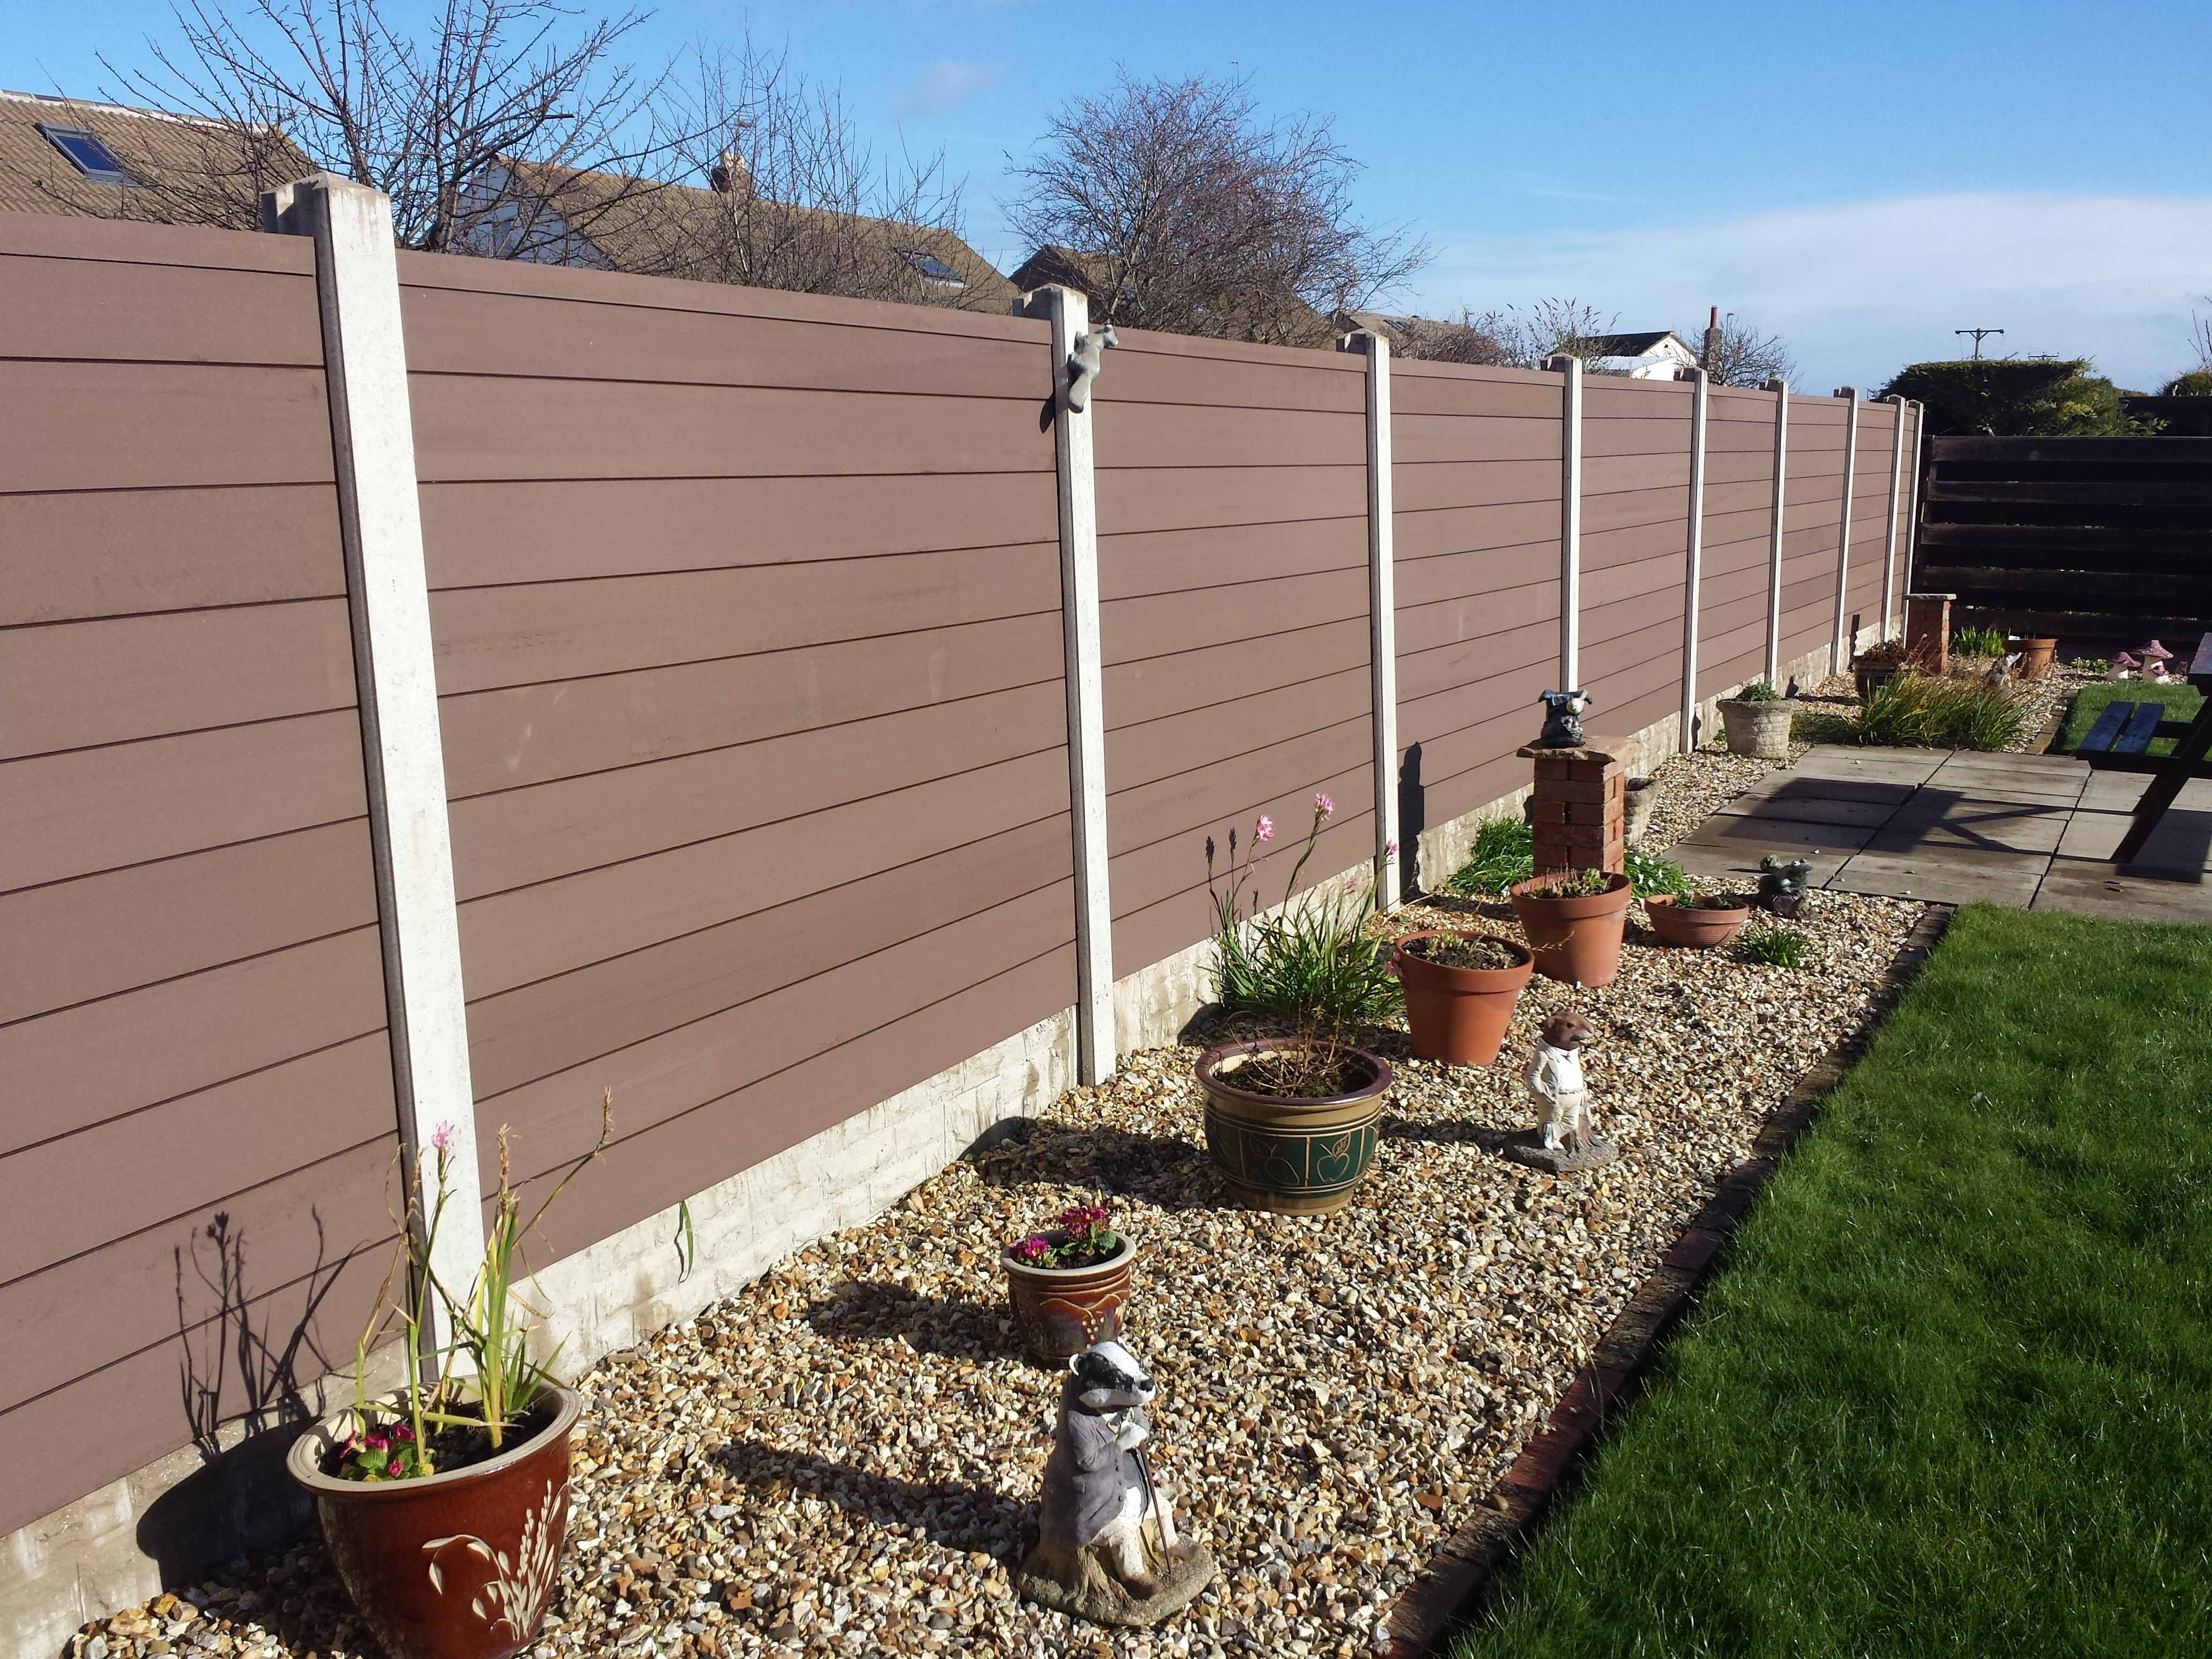 Composite decking fence7ft high wood fence panelsinstalling wood composite decking fence7ft high wood fence panelsinstalling woodfence on existing baanklon Gallery